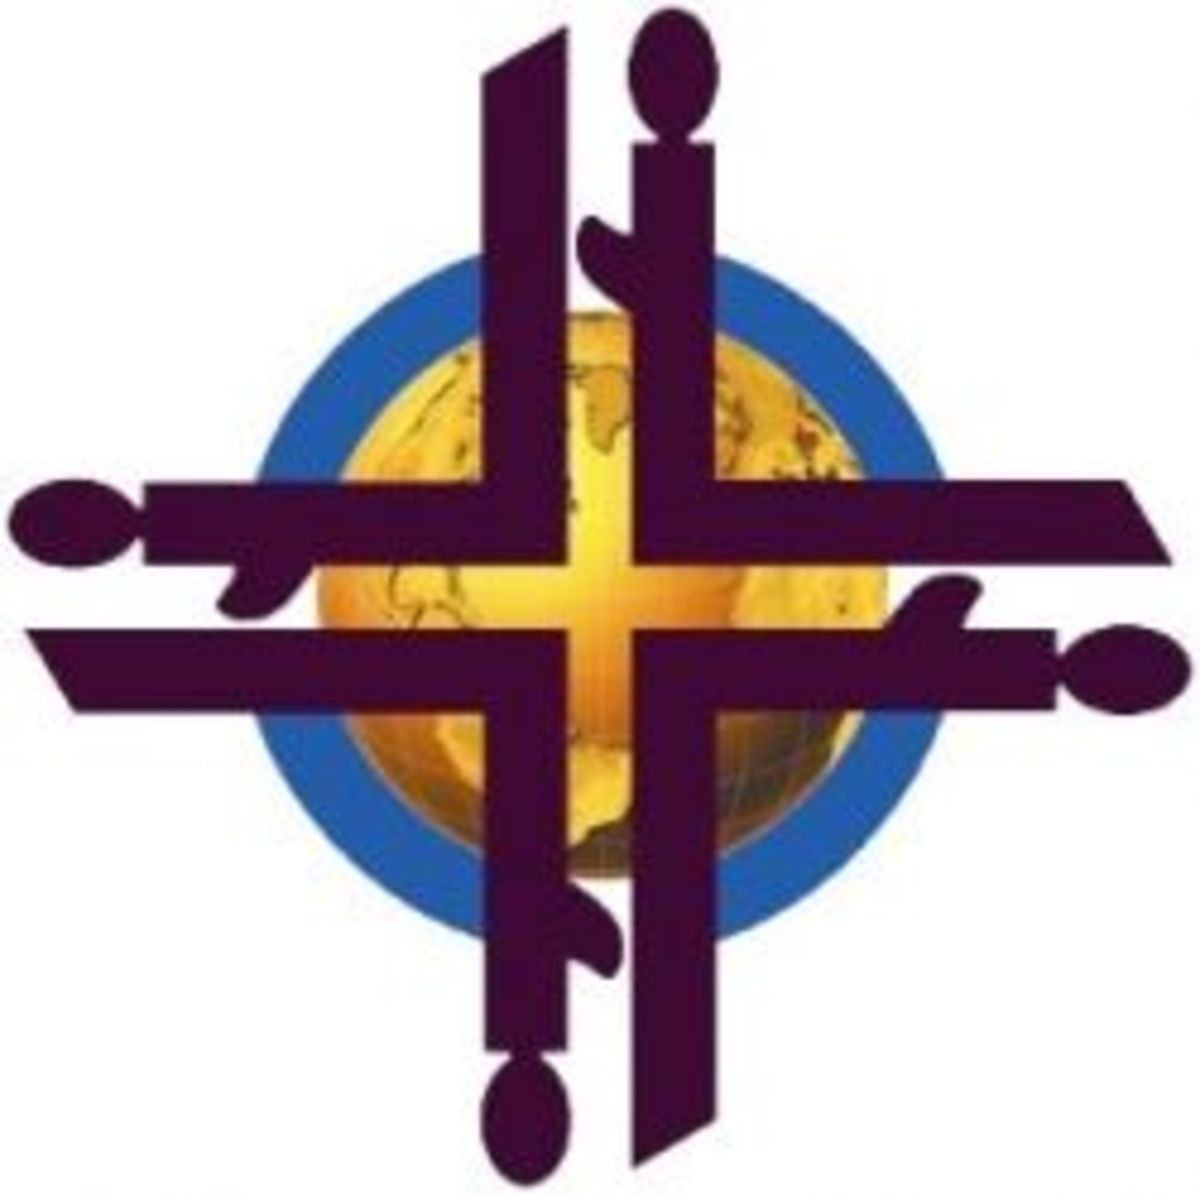 This is the logo for the World Day of Prayer.